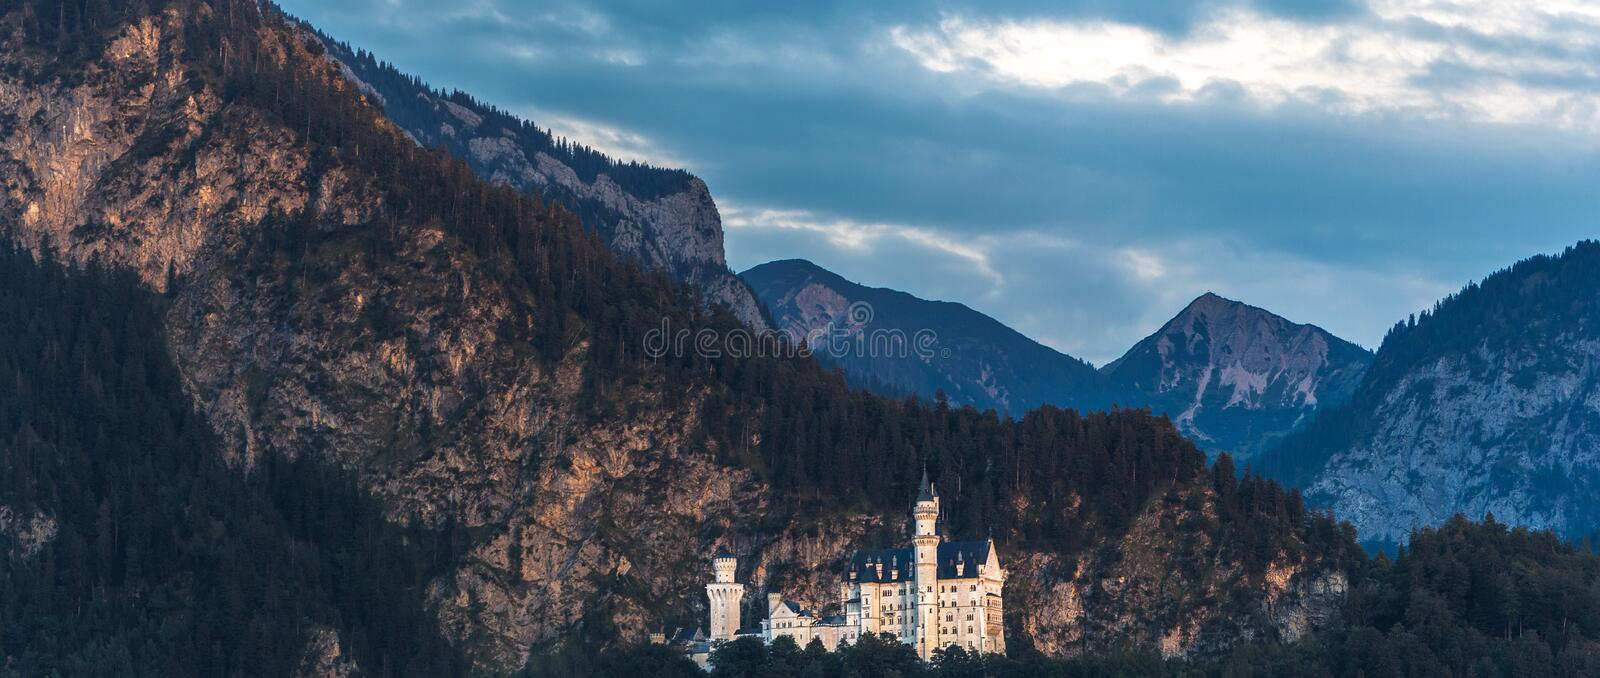 The famous fairytale Neuschwanstein castle in Bavaria and the Alps are painted with soft Golden sunlight at dawn royalty free stock photos